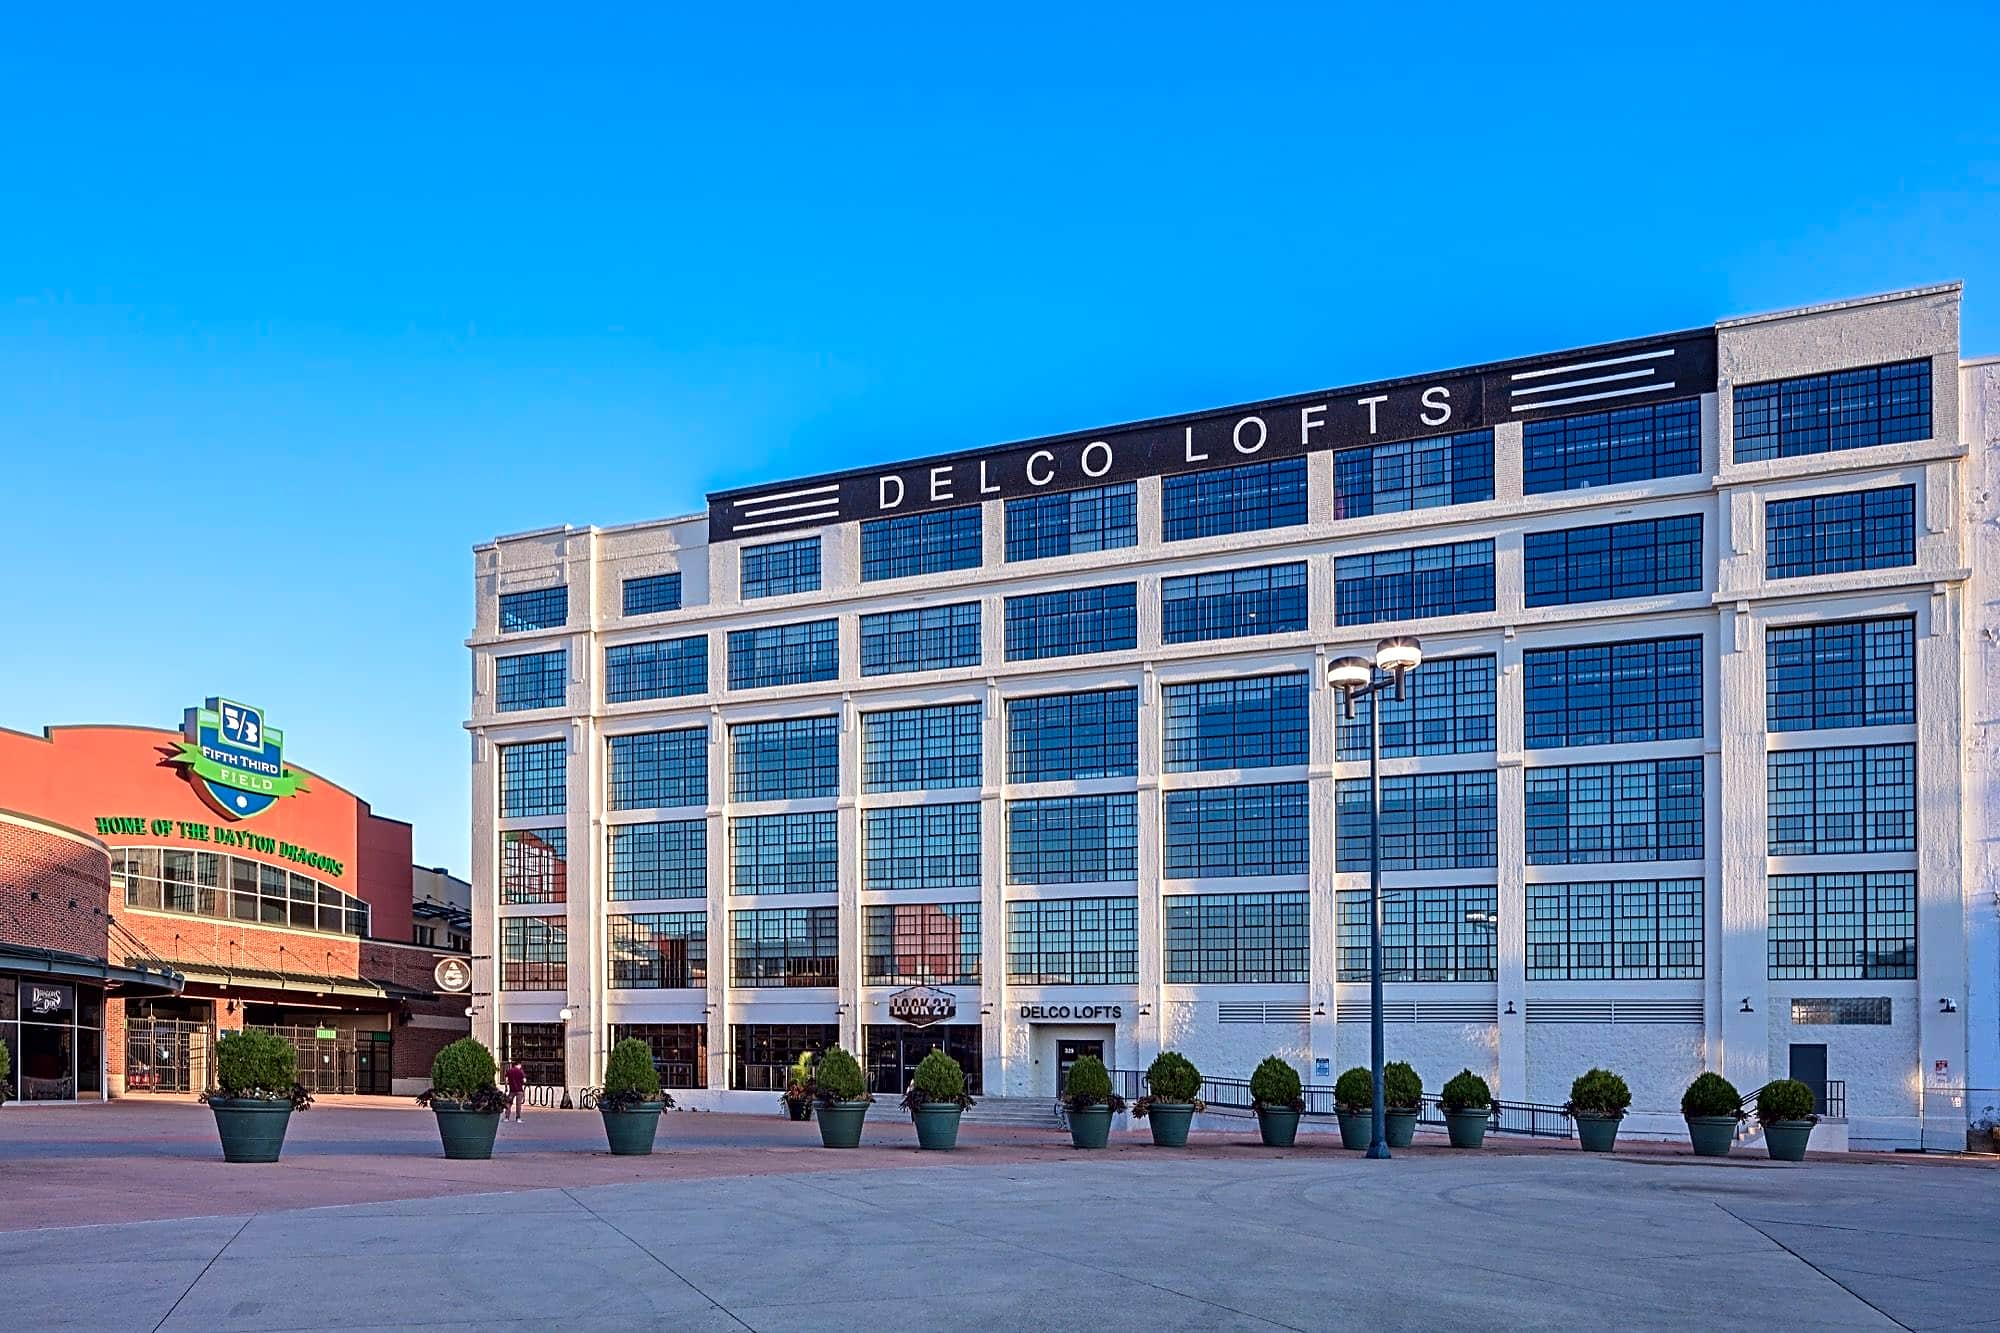 Apartments Near Sinclair Delco Lofts for Sinclair Community College Students in Dayton, OH